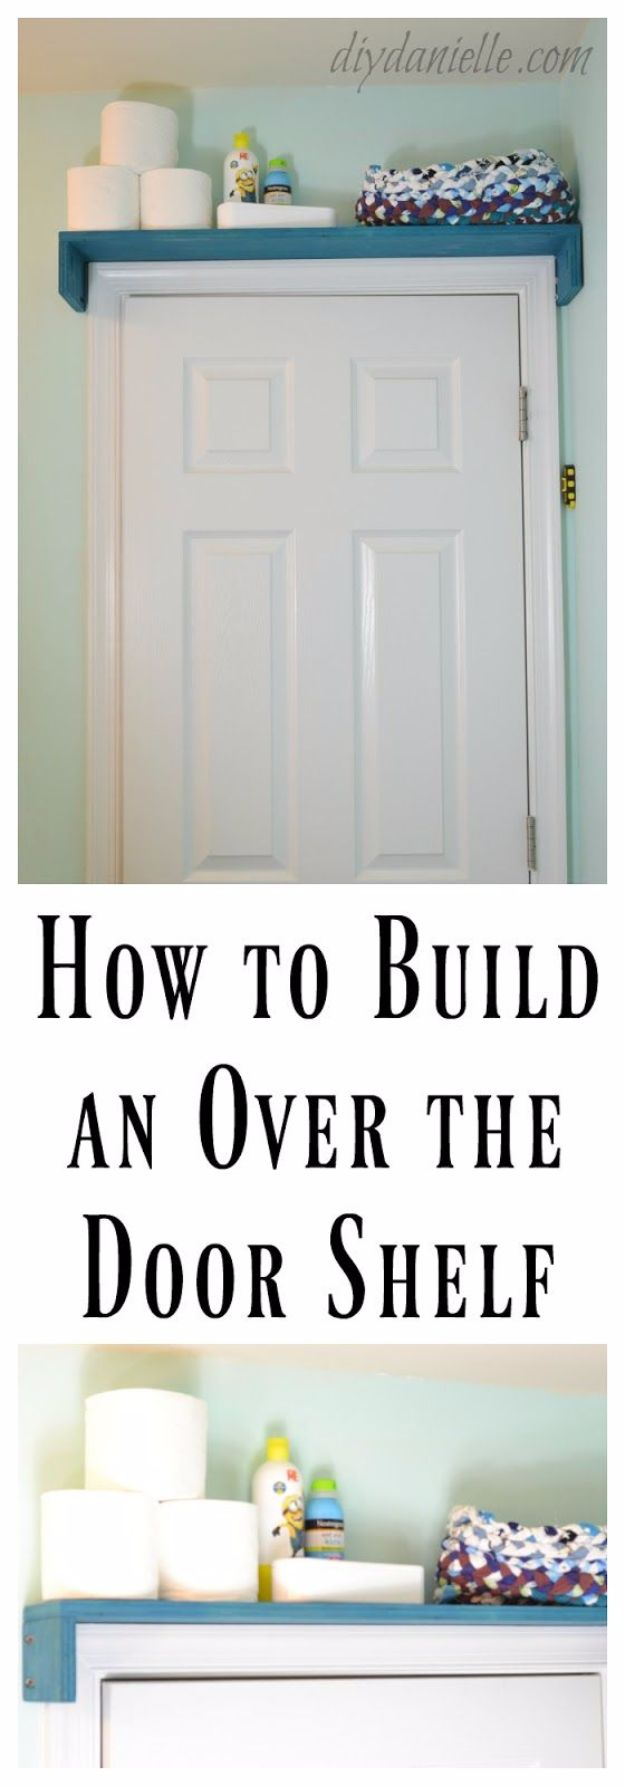 DIY Bathroom Storage Ideas - Build an Over the Door Shelf - Best Solutions for Under Sink Organization, Countertop Jars and Boxes, Counter Caddy With Mason Jars, Over Toilet Ideas and Shelves, Easy Tips and Tricks for Small Spaces To Organize Bath Products #storageideas #diybathroom #bathroomdecor